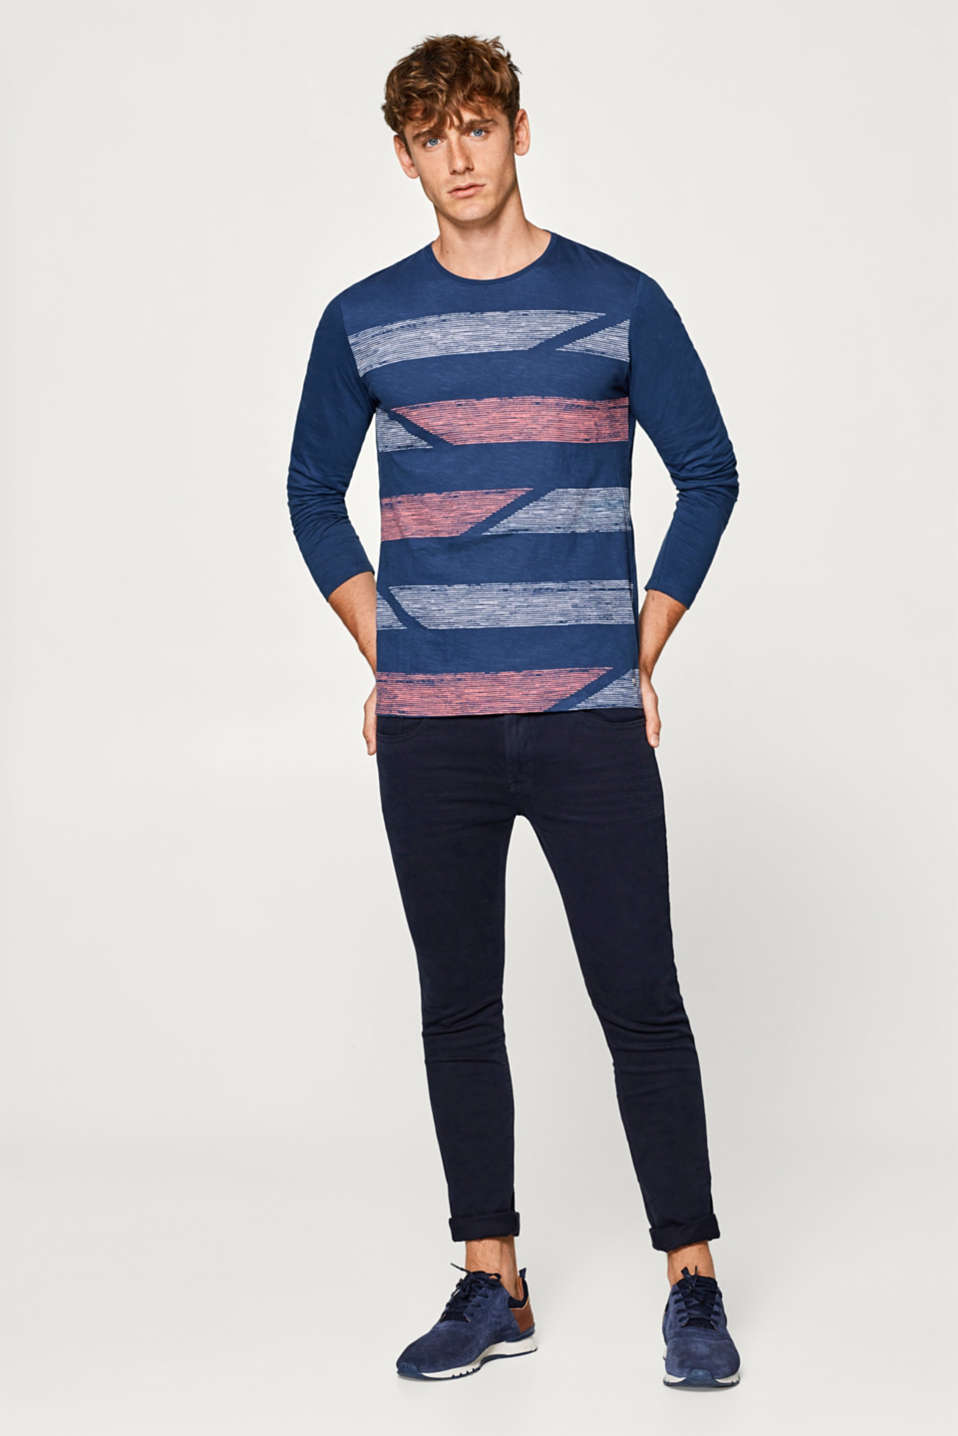 edc - Jersey long sleeve top with a print, 100% cotton